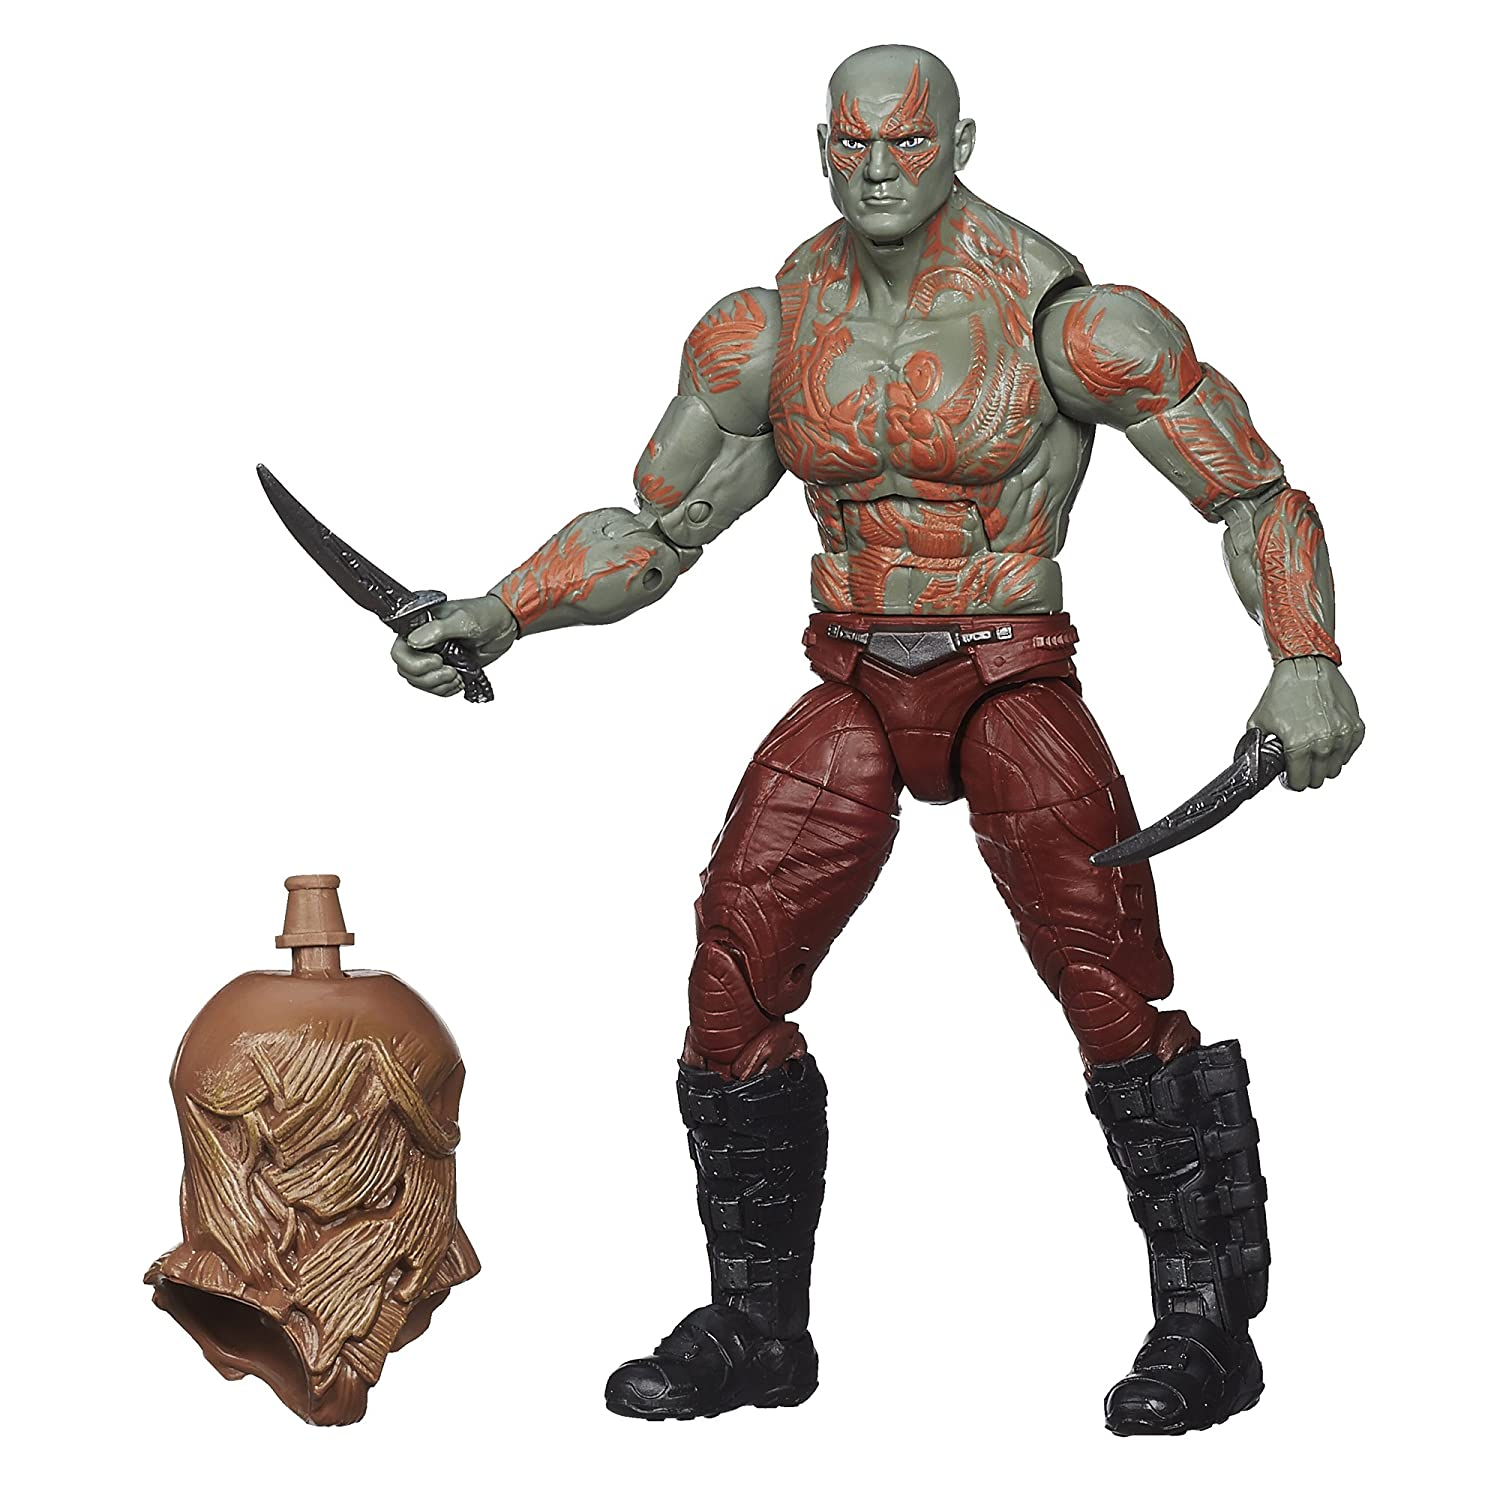 Marvel Legends Guardians of the Galaxy Drax Action Figure,6 Inch Hasbro A7907000